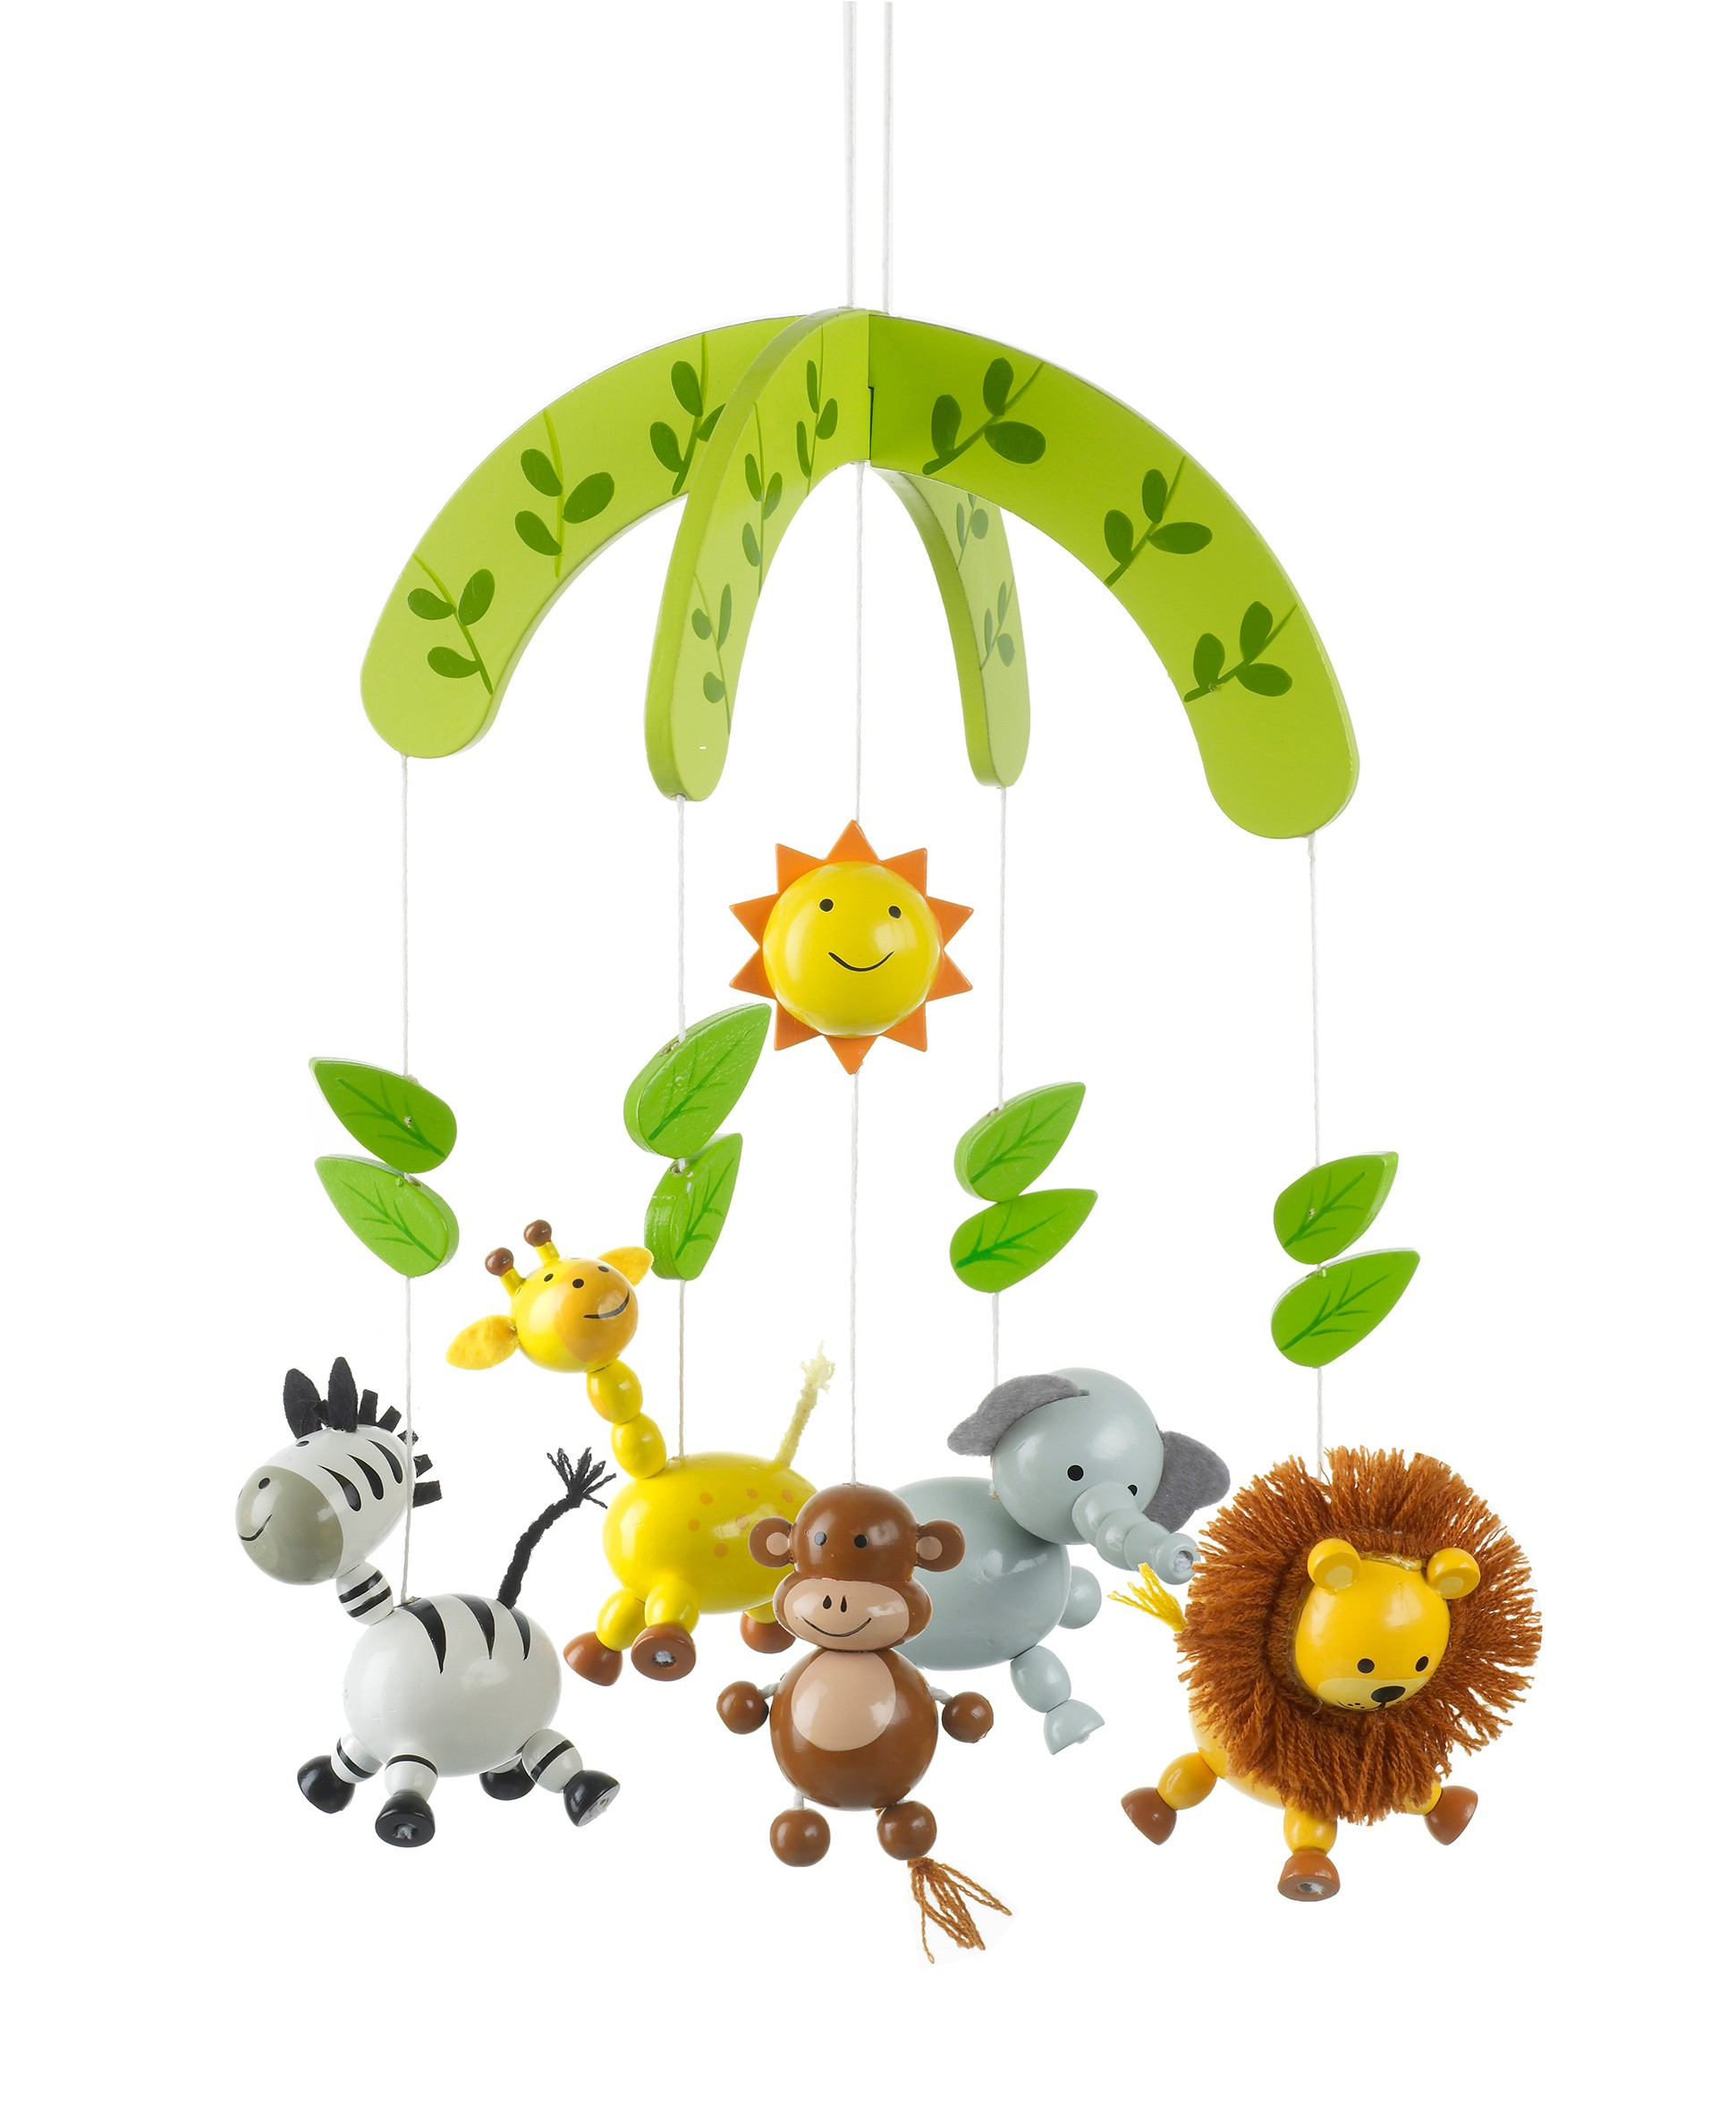 Wooden Nursery Mobile - Friendly Animal Safari